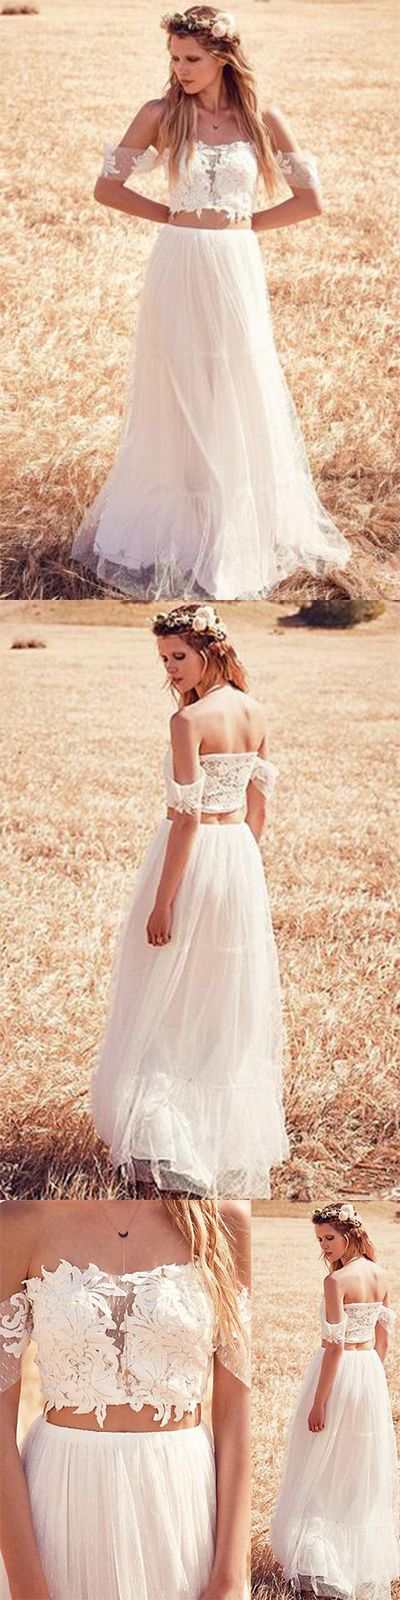 Unique A-Line Two Pieces Off-the-Shoulder Ivory Tulle Princess Lace Wedding Dresses UK PH405#twopiece#ivory#princess#tulle#offshoulder#bridaldress